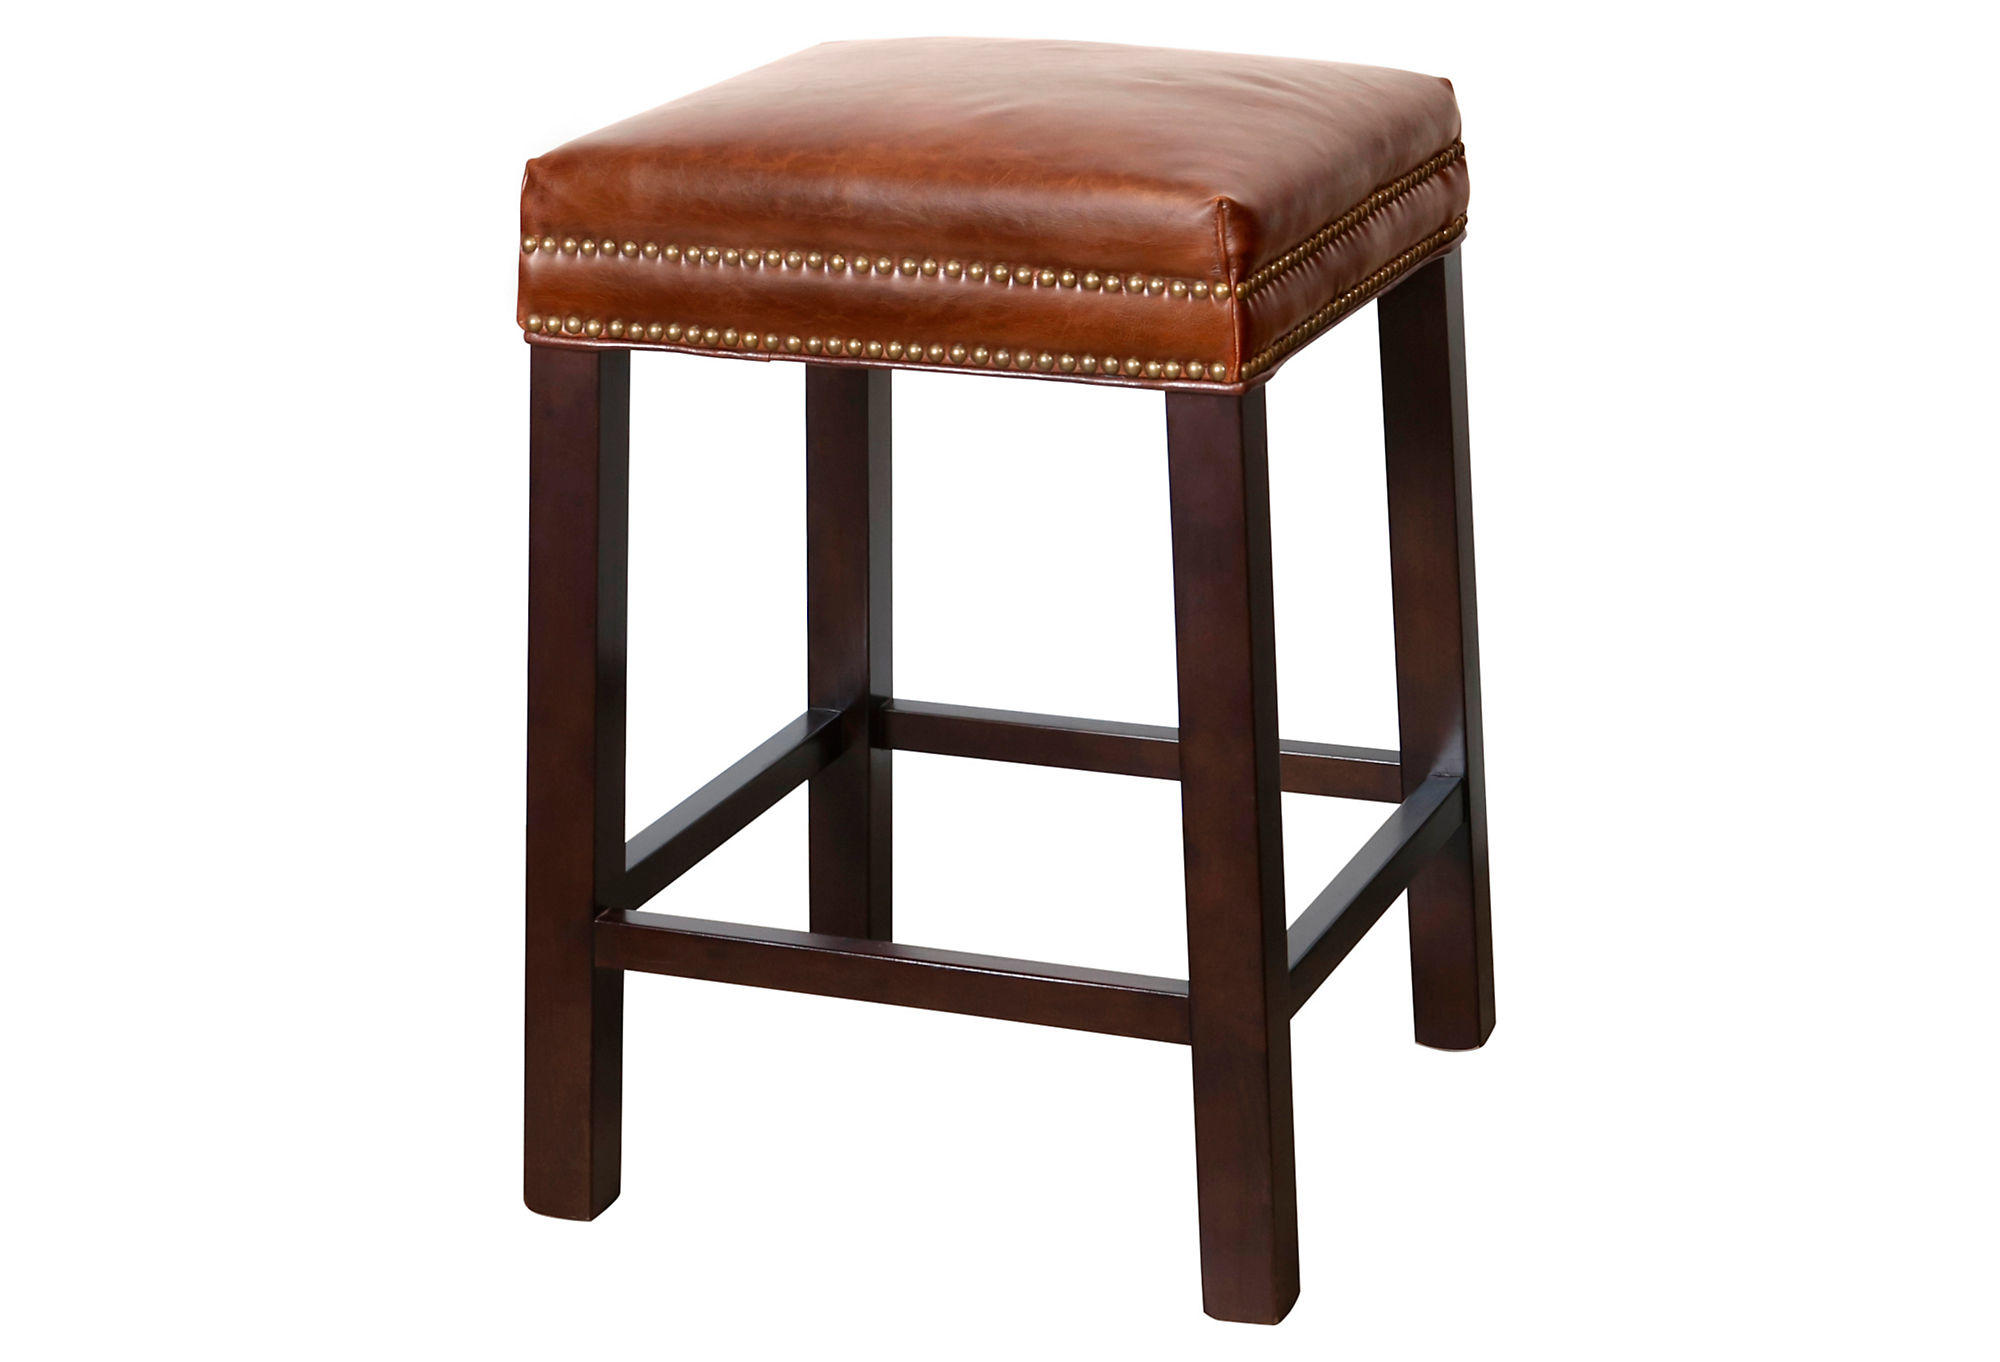 Belmont Leather Stool Saddle Brown Bar From One Kings Lane My